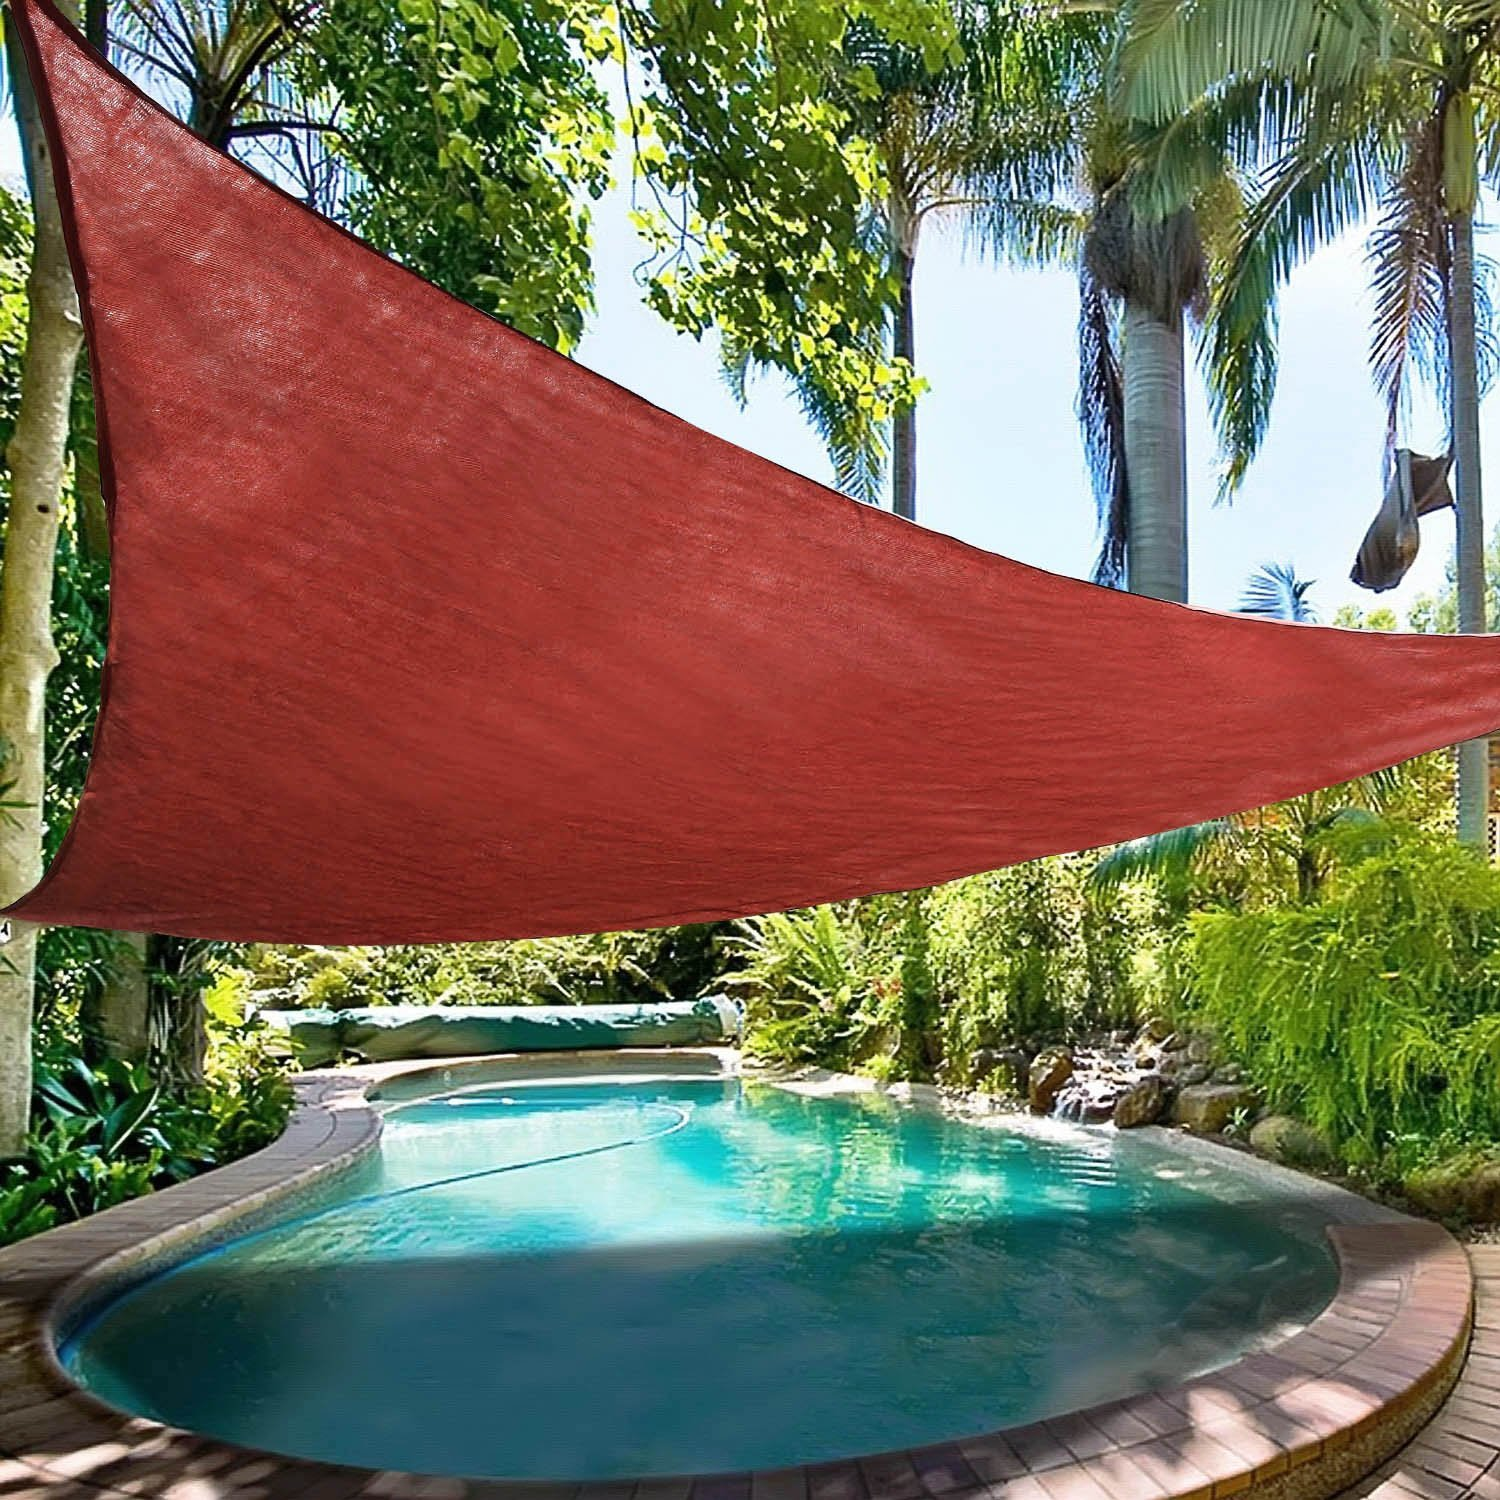 Jinguan Shade Sail UV Block Fabric Patio Outdoor Canopy Sun Shelter With  5ft PE Ropes And Steel D Rings 12x12x12ft Trangle In Awnings From Home U0026  Garden On ...